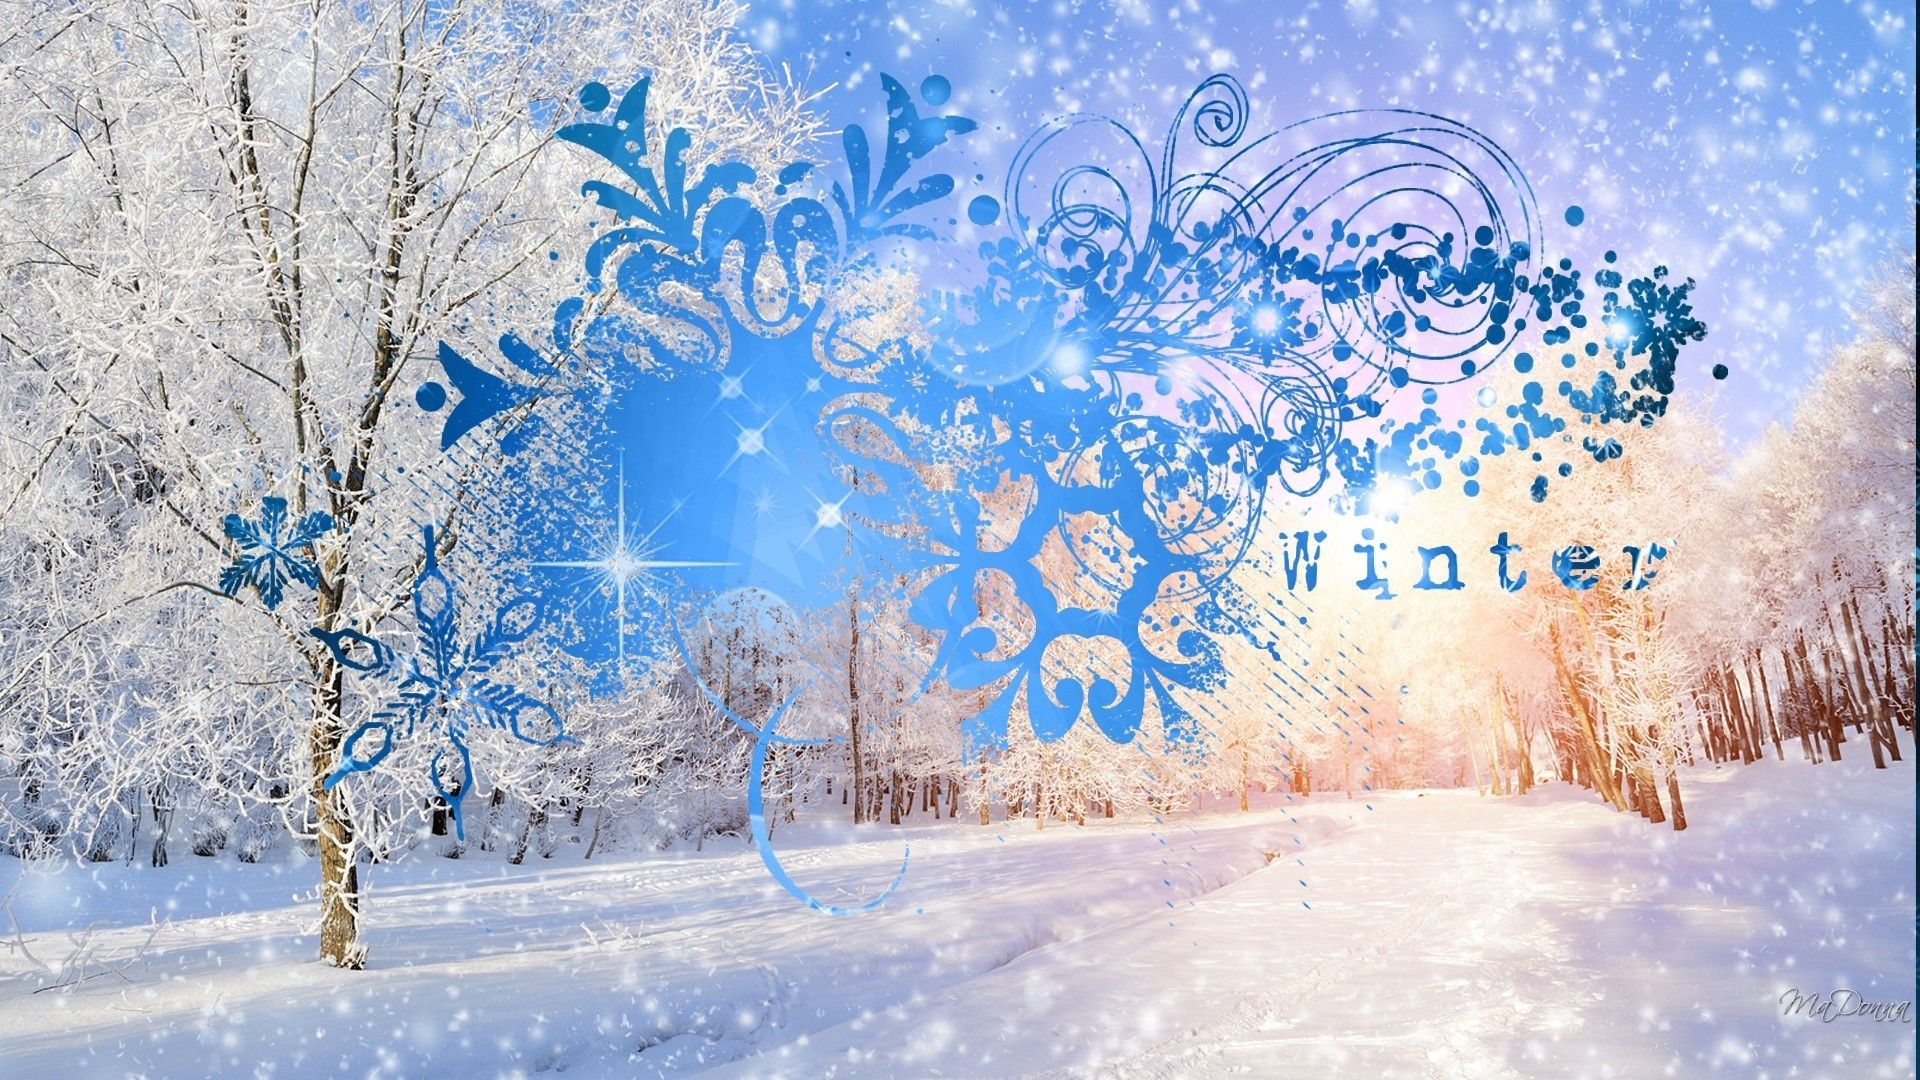 Winter Wonderland Desktop Wallpaper 1920x1080 For 1080p Desktop Wallpaper 1920x1080 Wallpaper Desktop Wallpaper